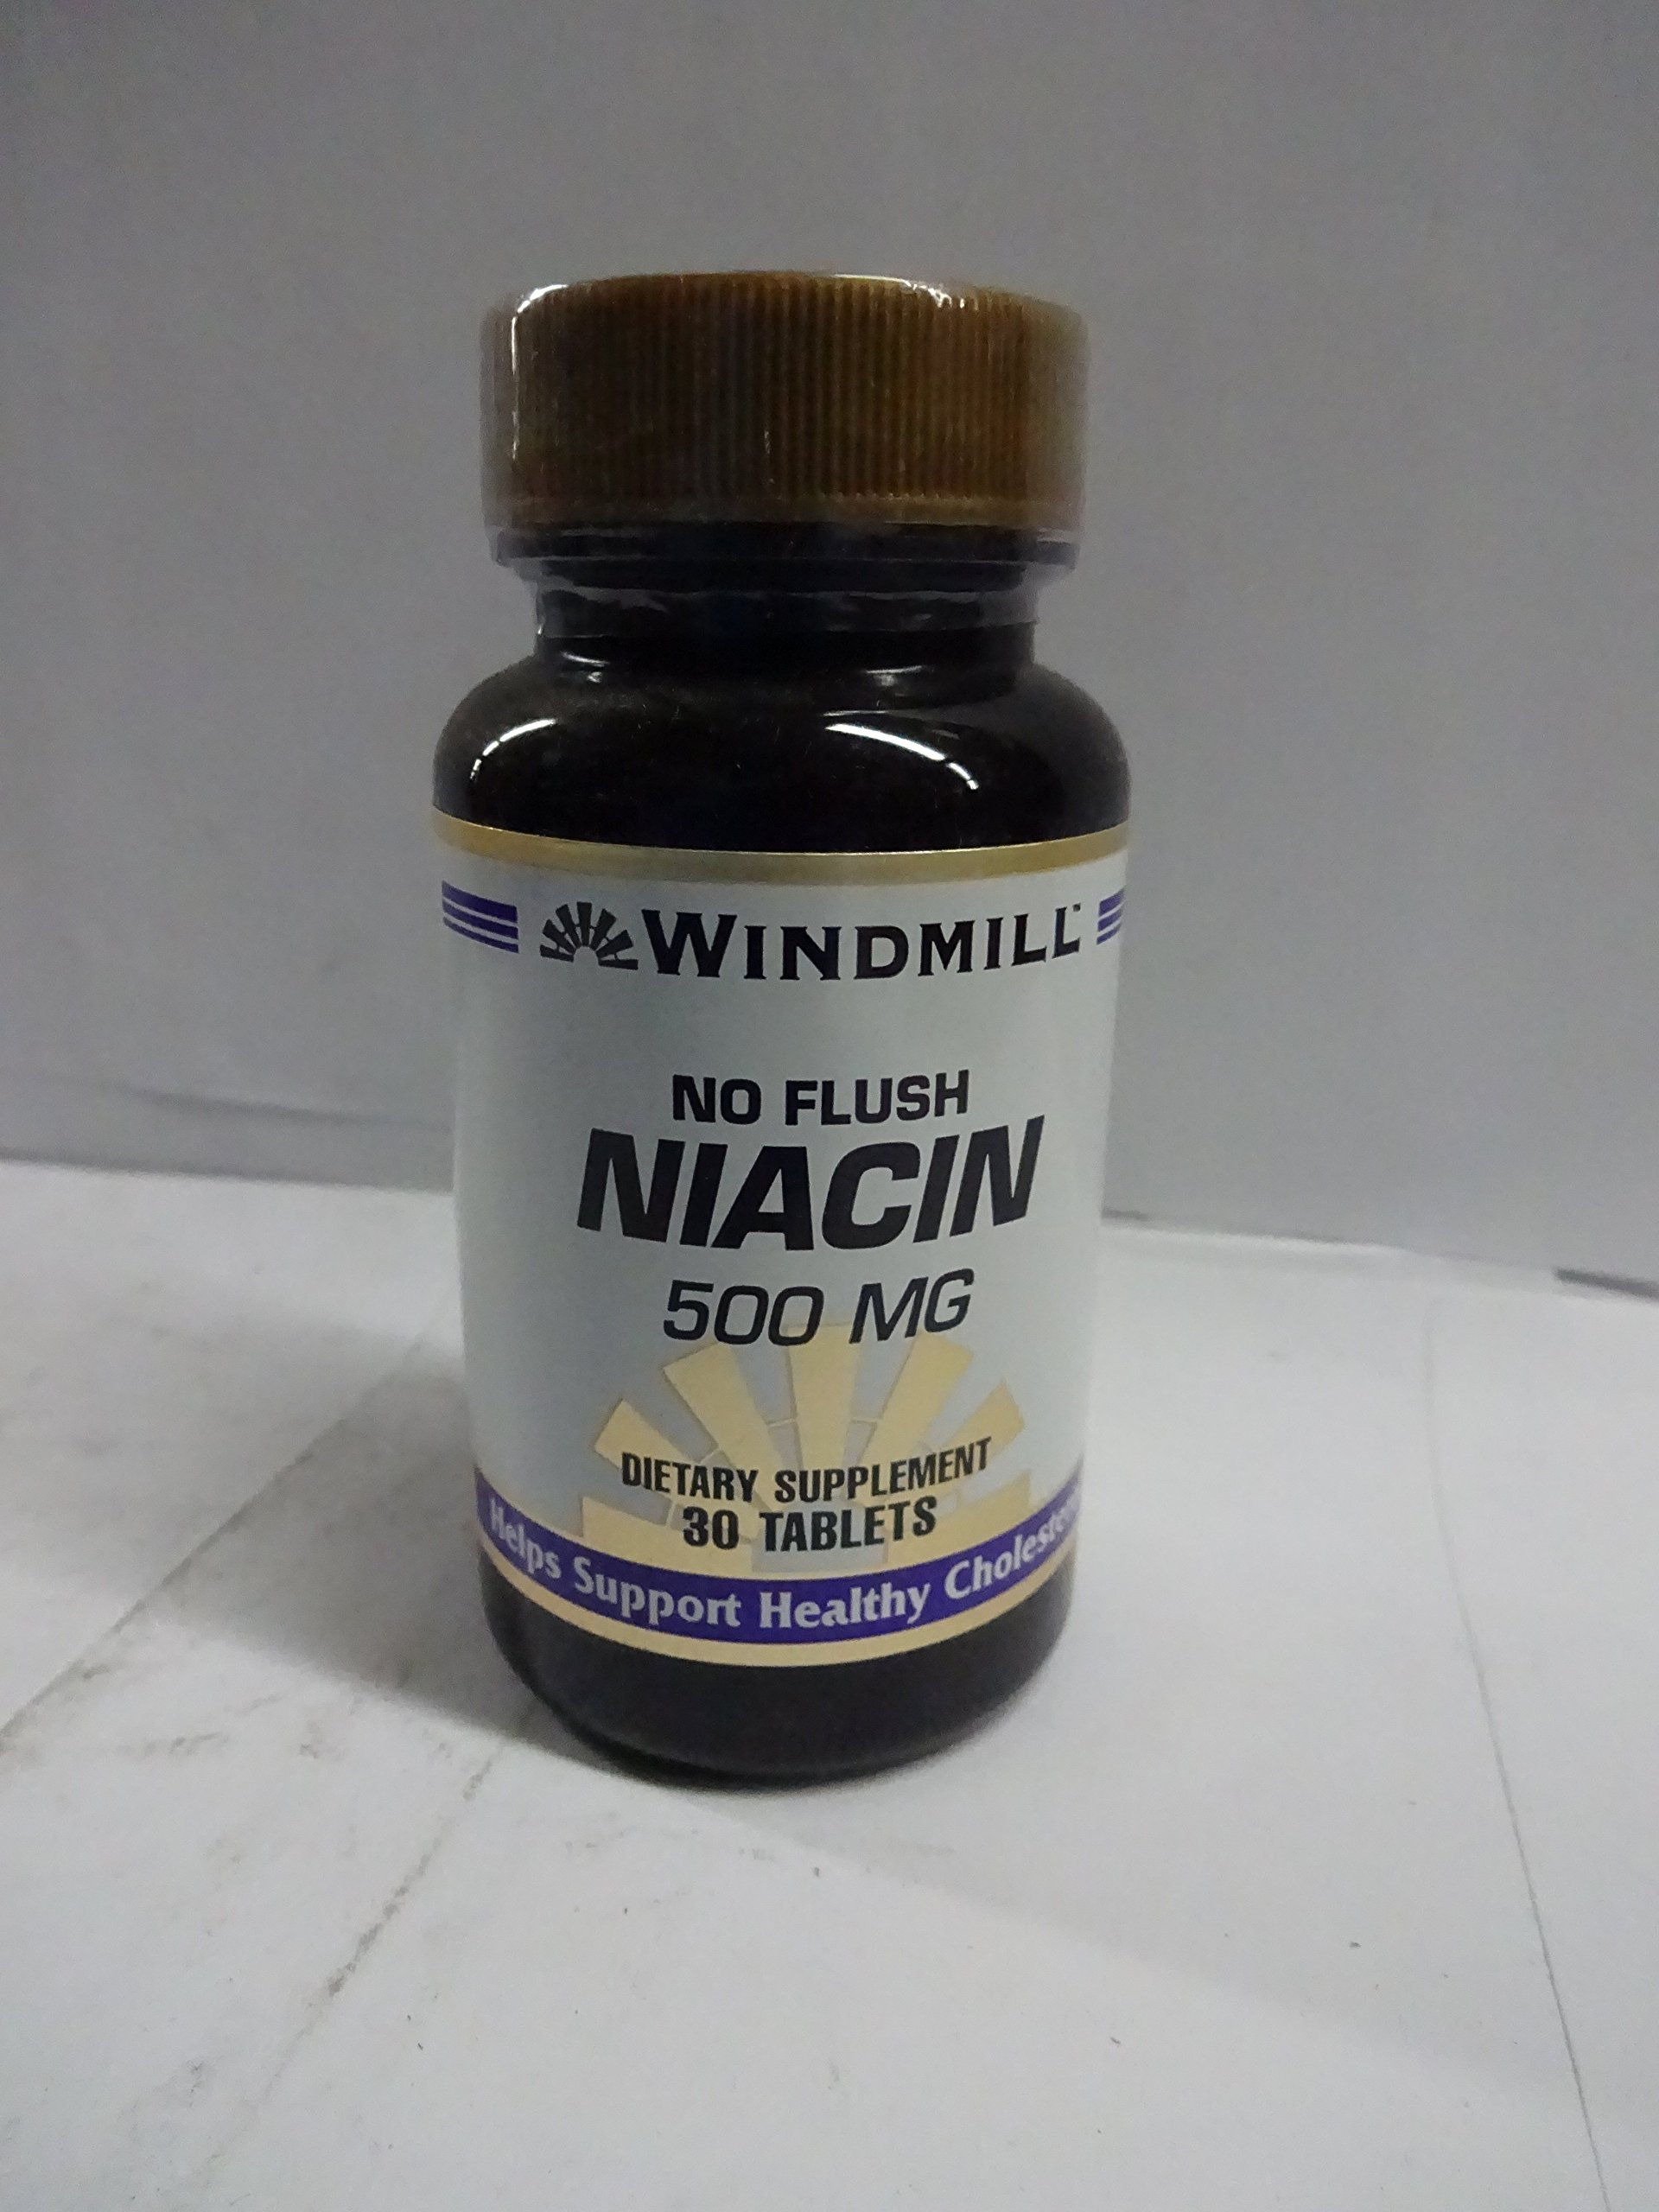 Windmill No Flush Niacin 500 Mg 30 Tablets (Pack of 5)